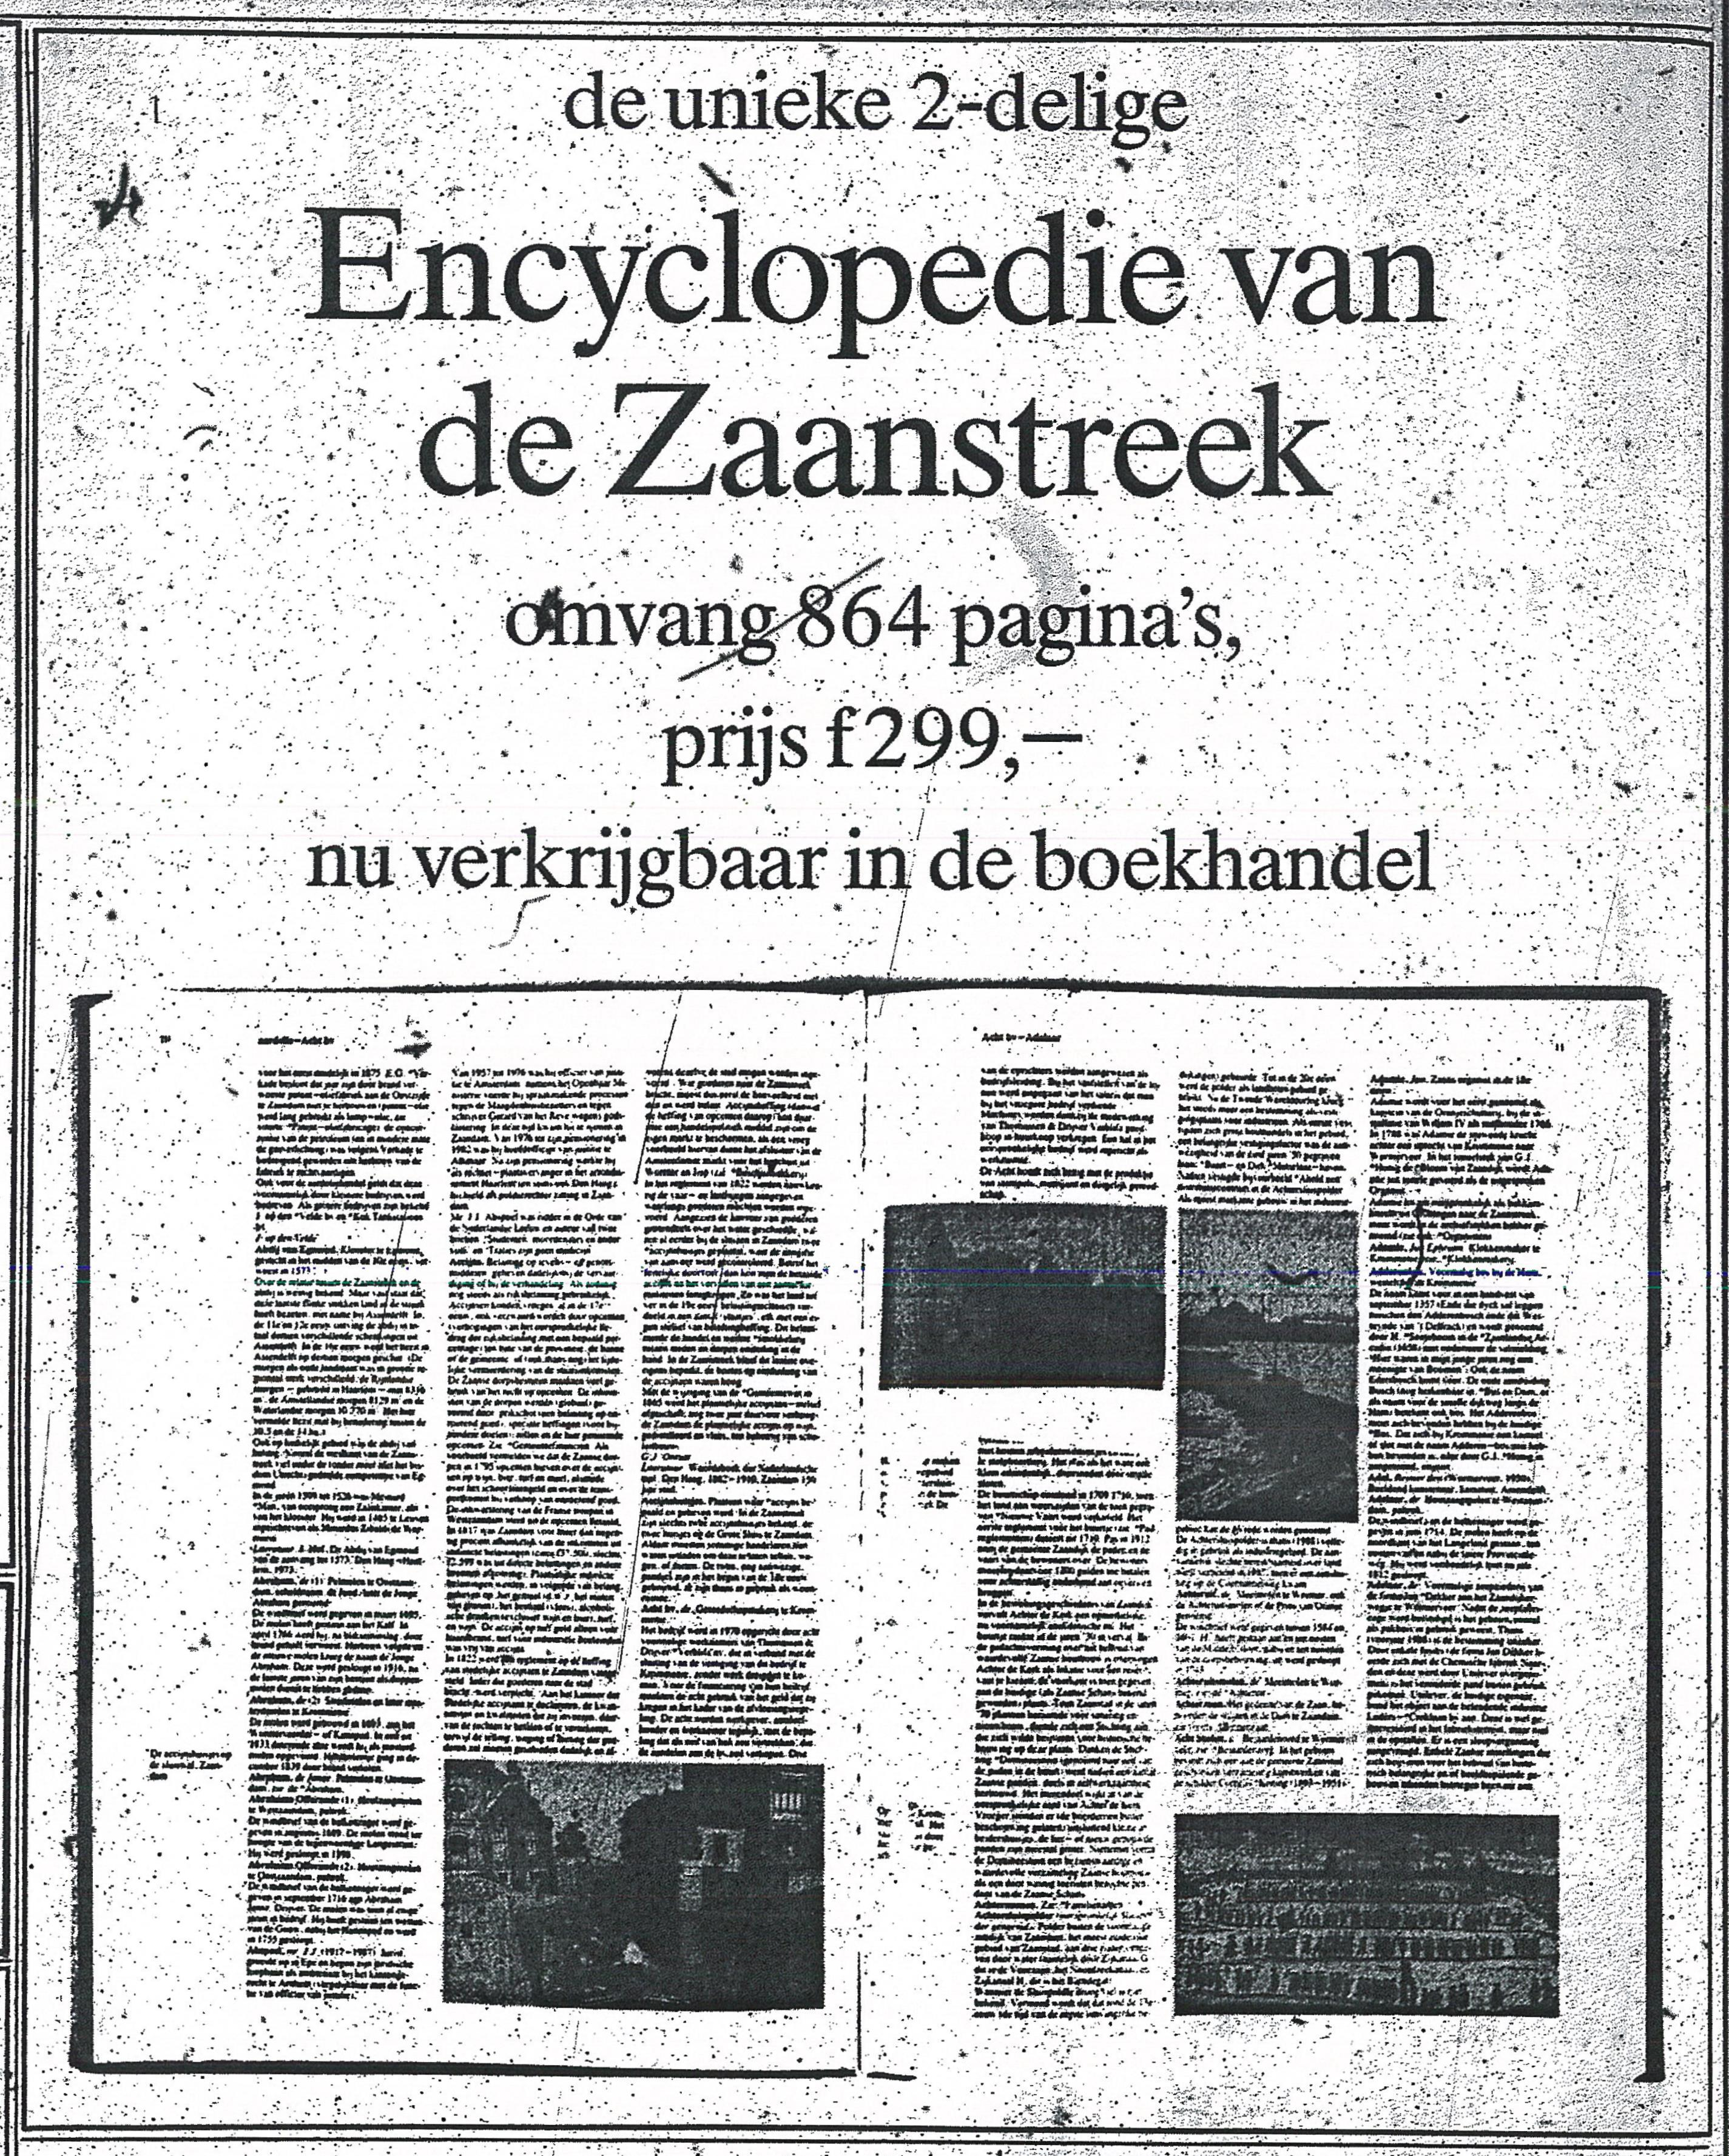 Advertentie Encyclopedie De Typhoon 26-10-1991